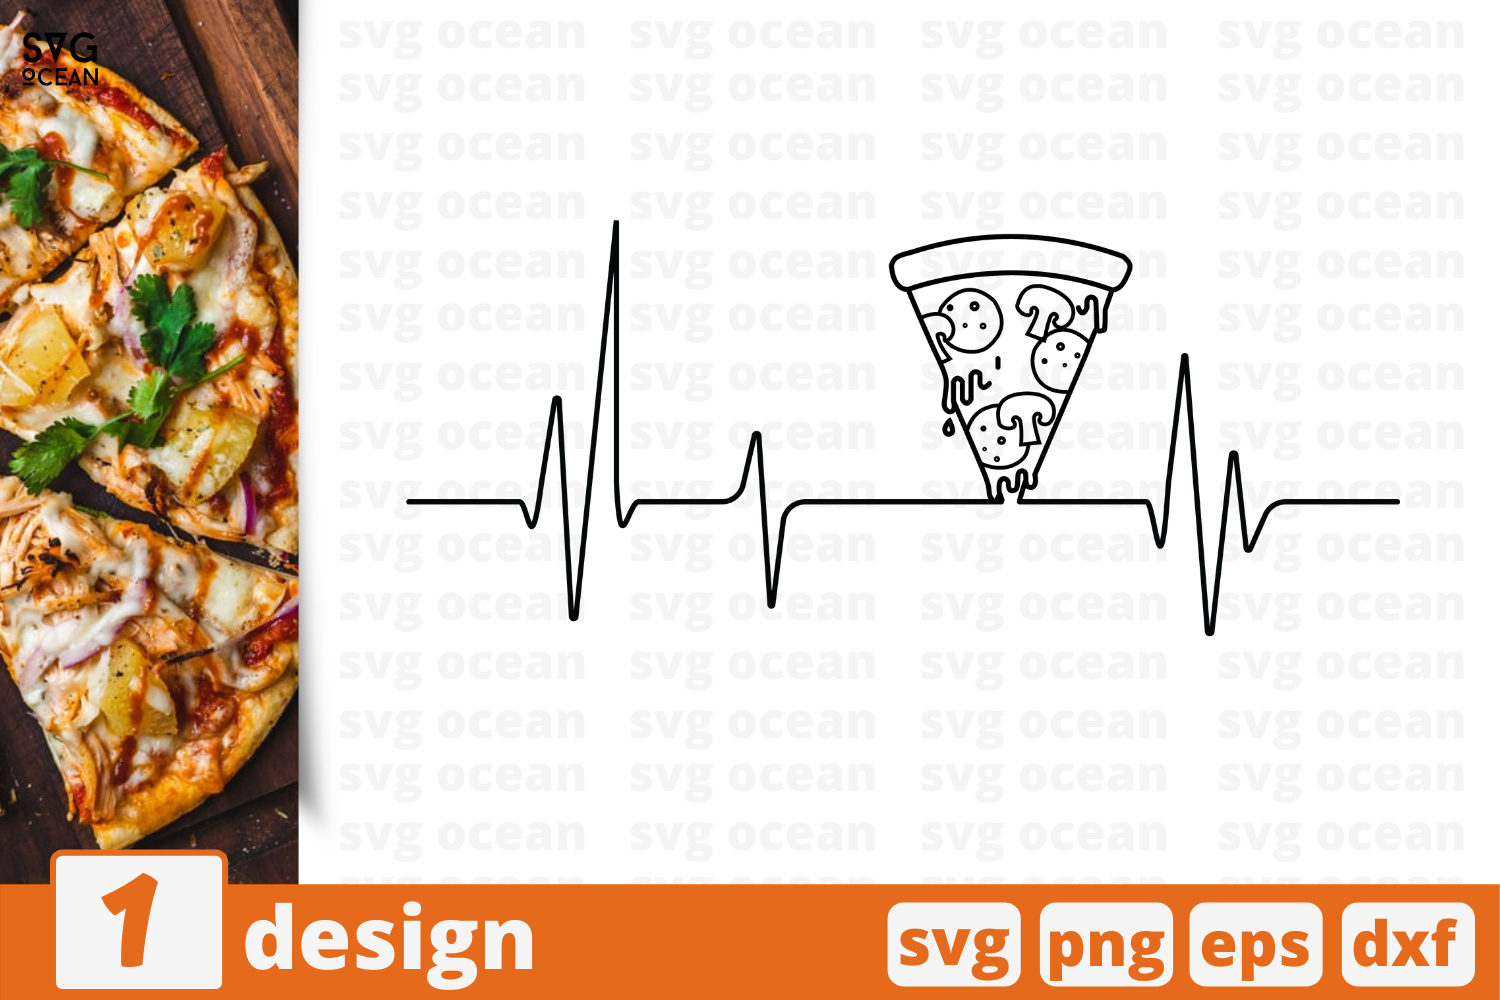 Download Free Pizza Heart Graphic By Svgocean Creative Fabrica for Cricut Explore, Silhouette and other cutting machines.